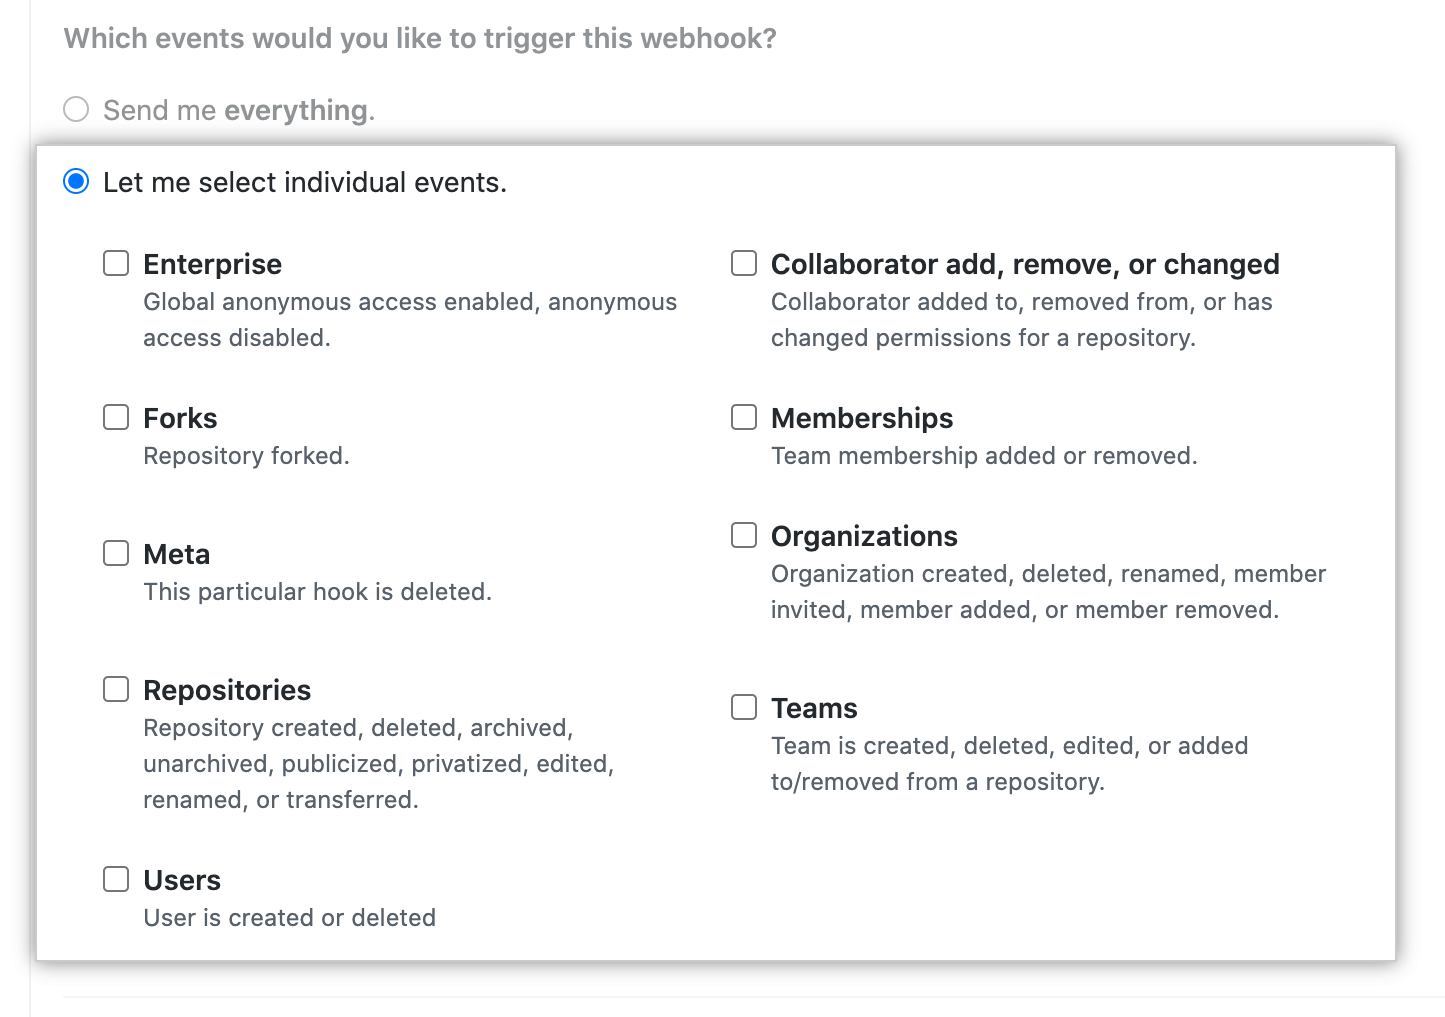 Checkboxes for individual global webhook events